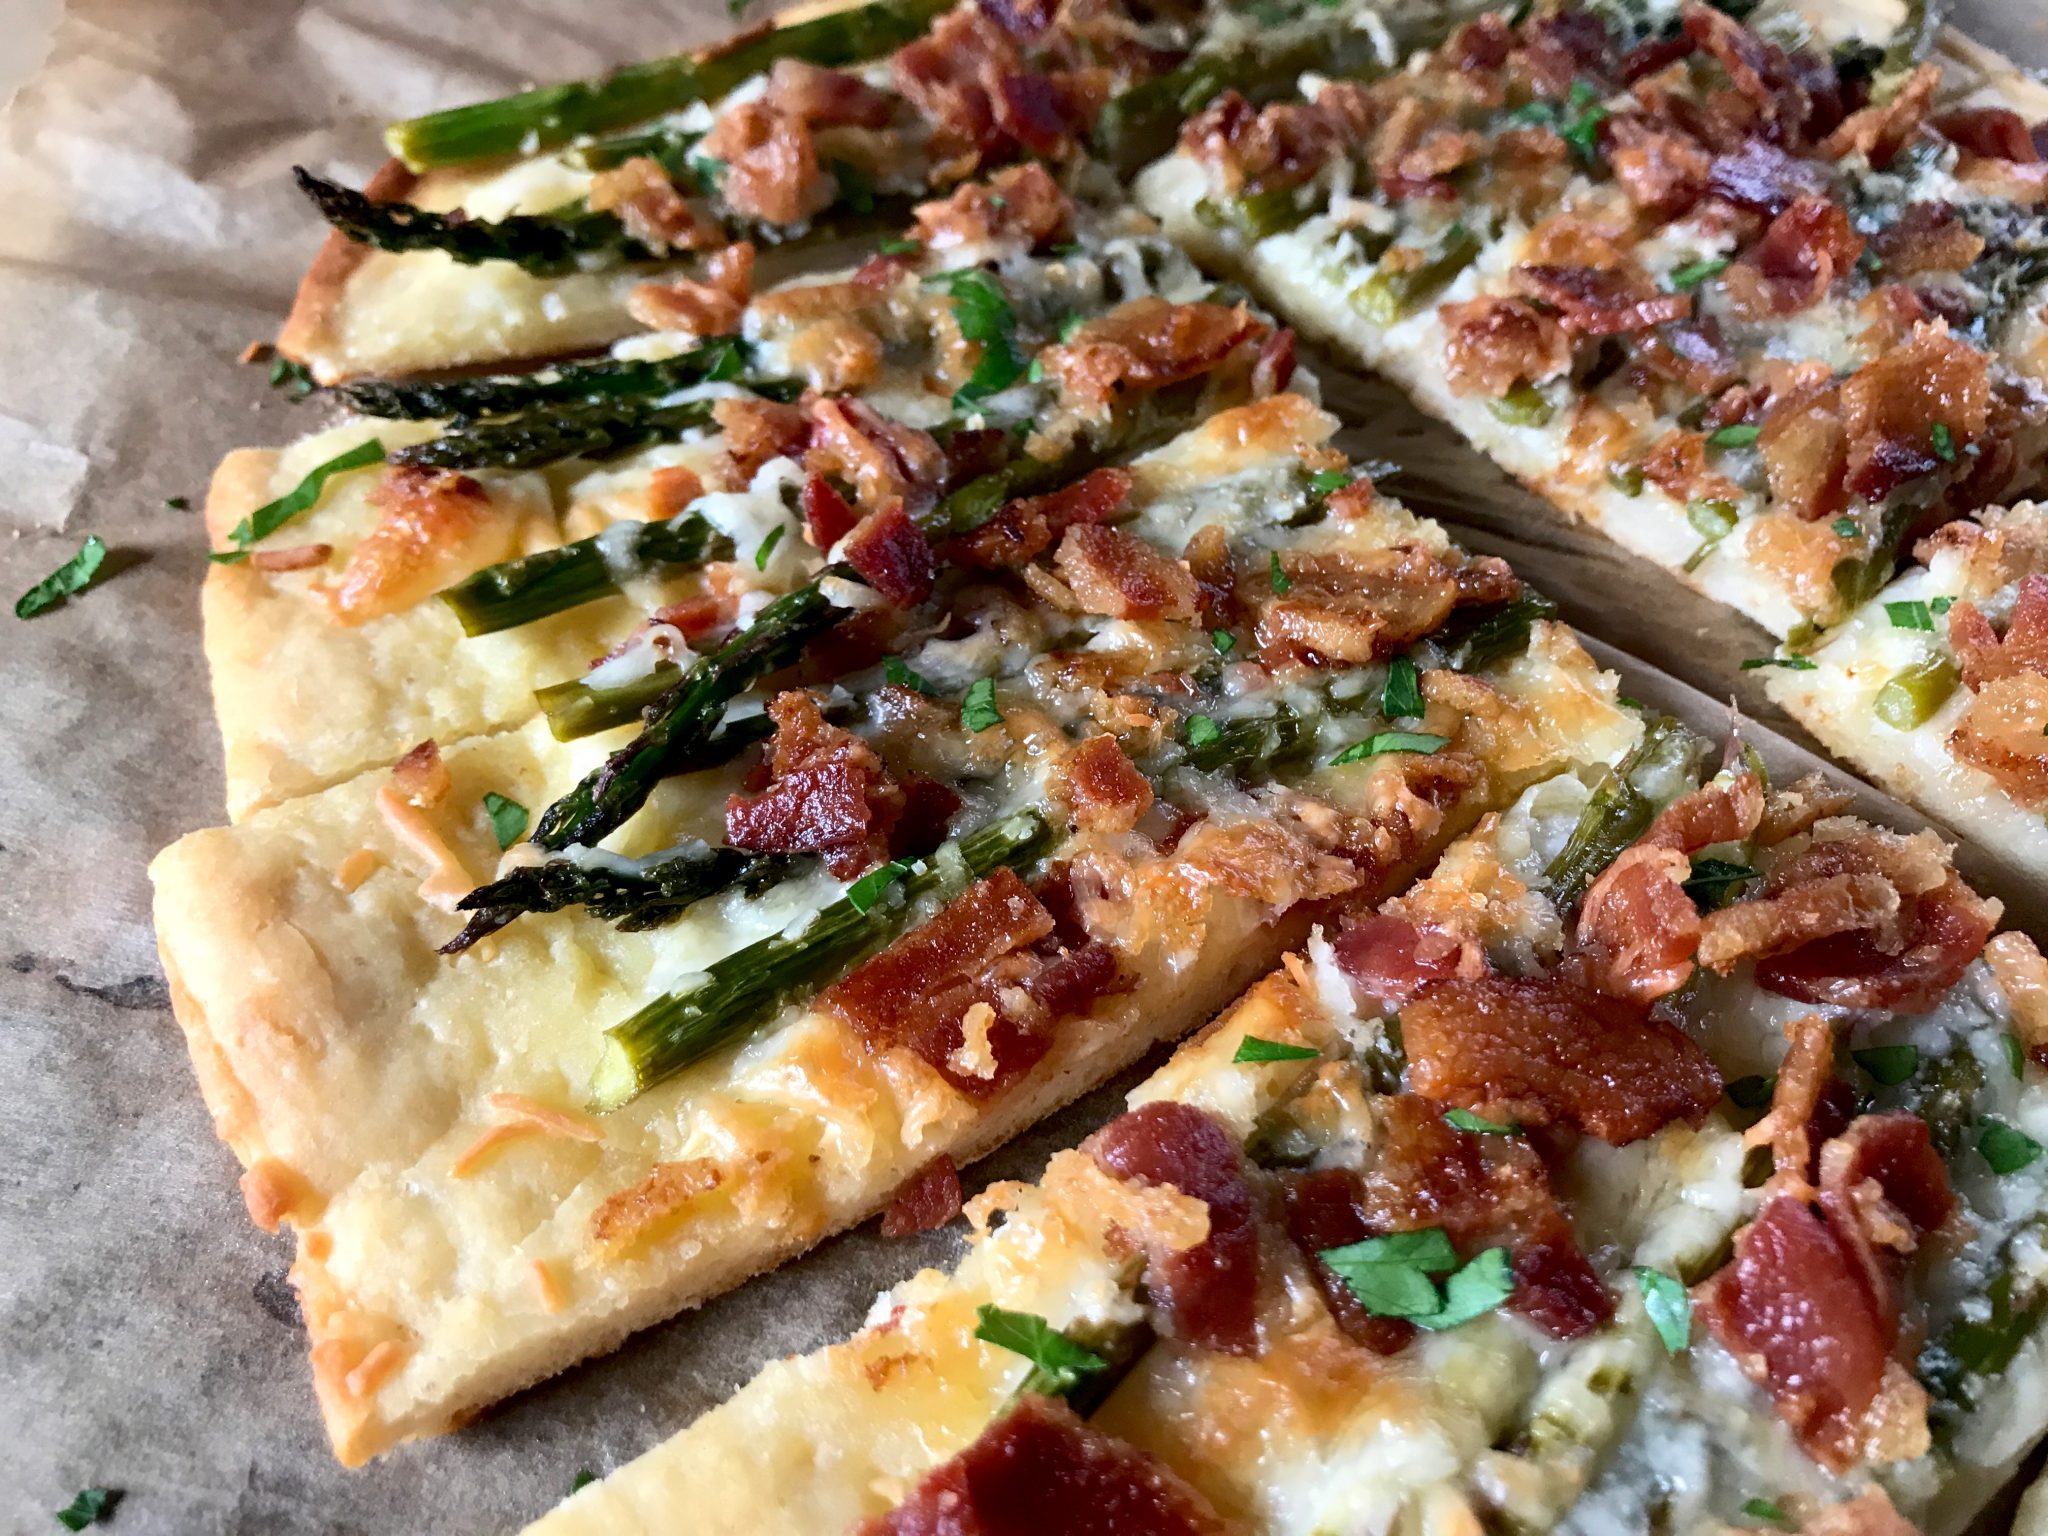 Bacon & Asparagus Cheesy Flatbread